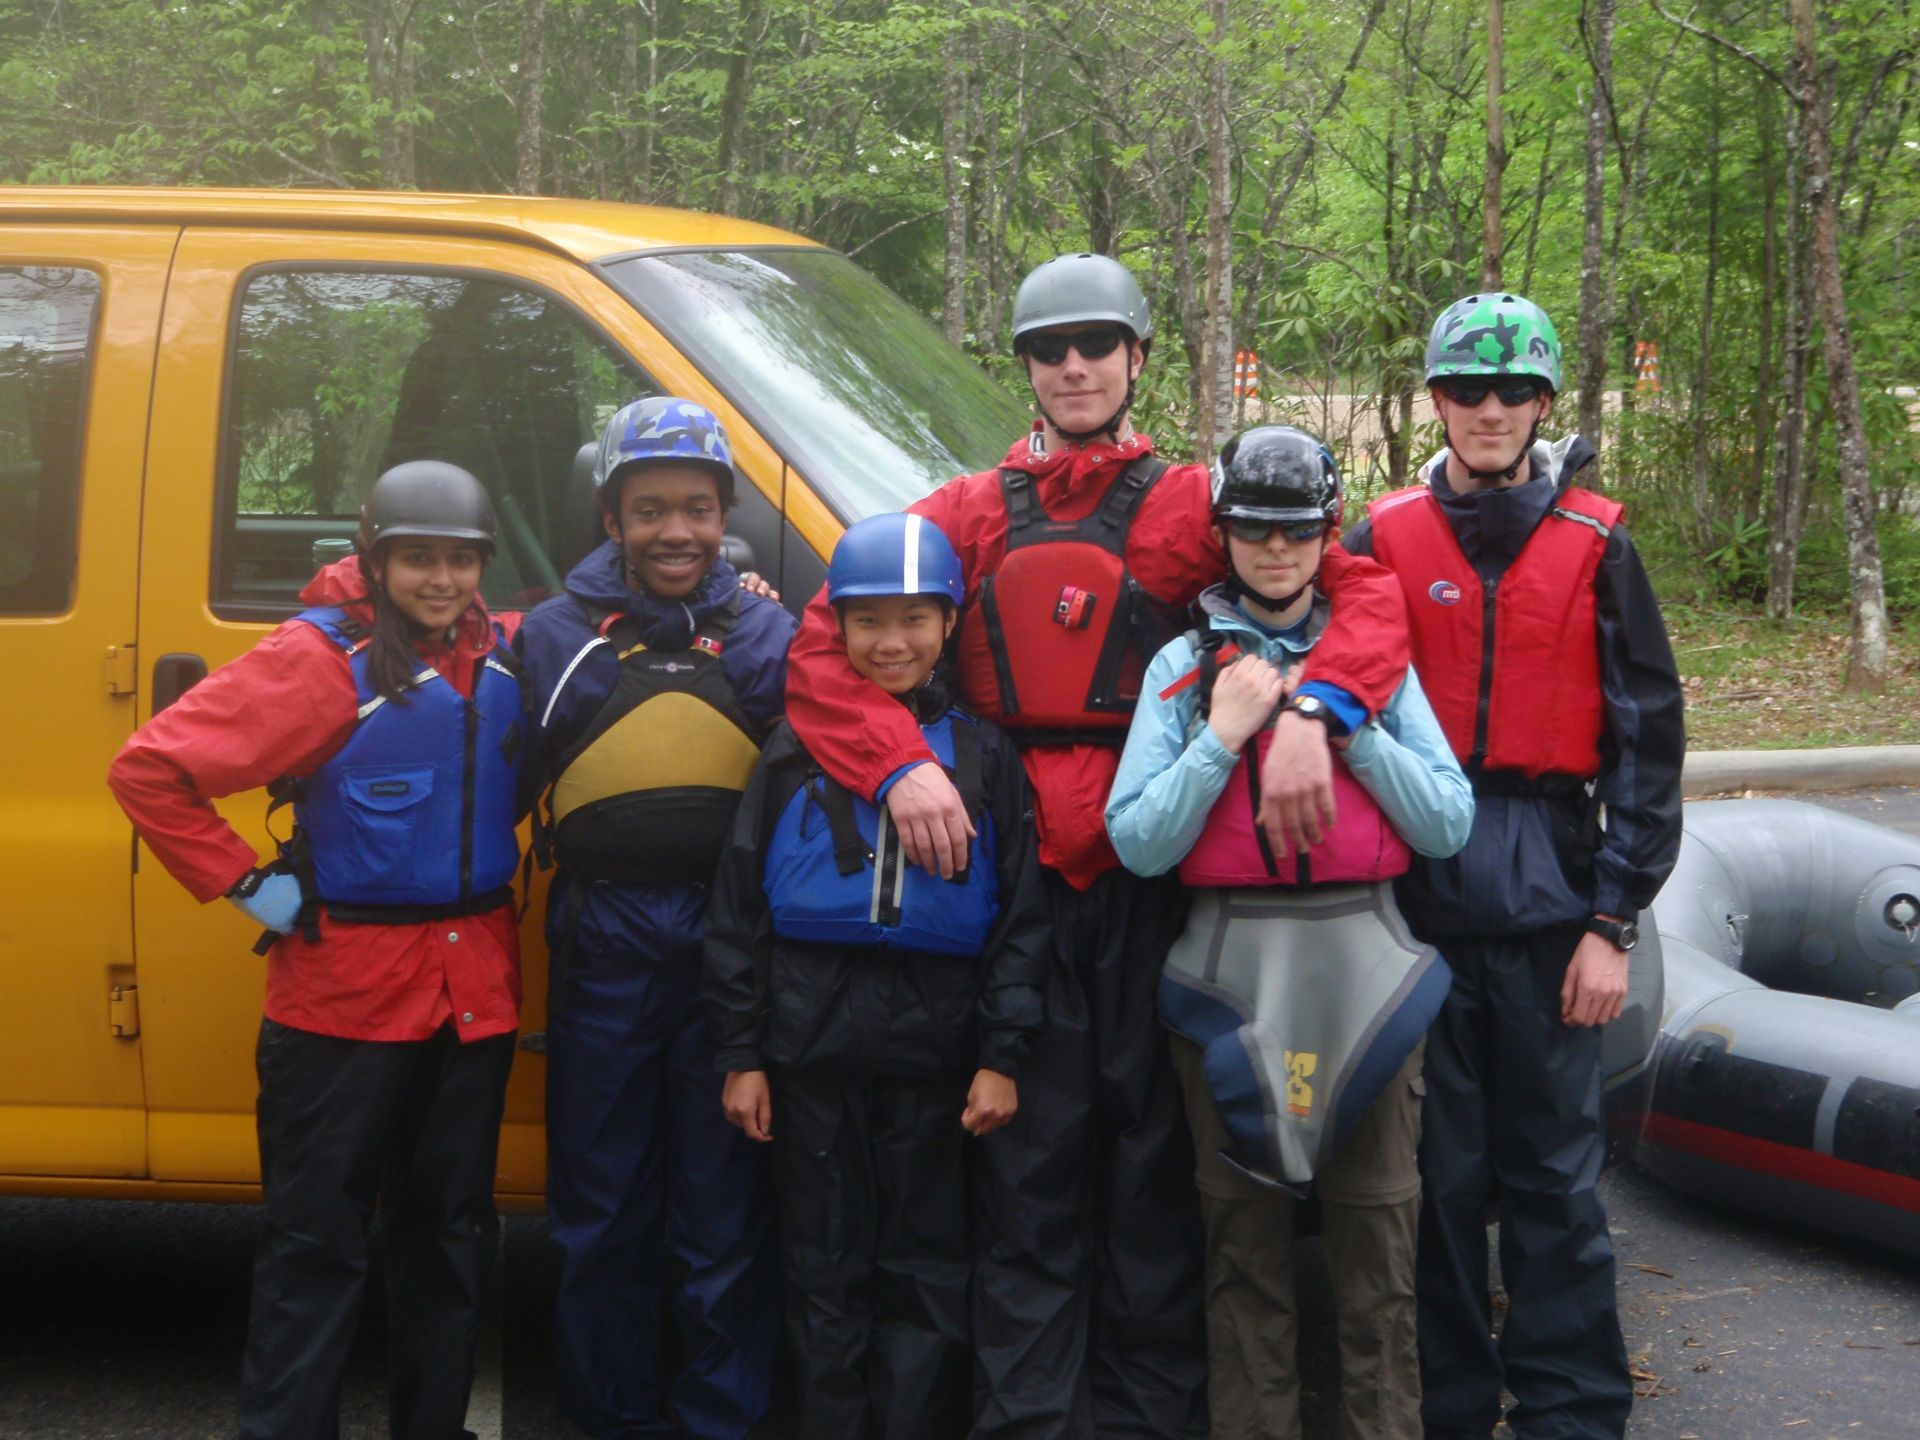 Preparing to paddle the Nantahala River in North Carolina